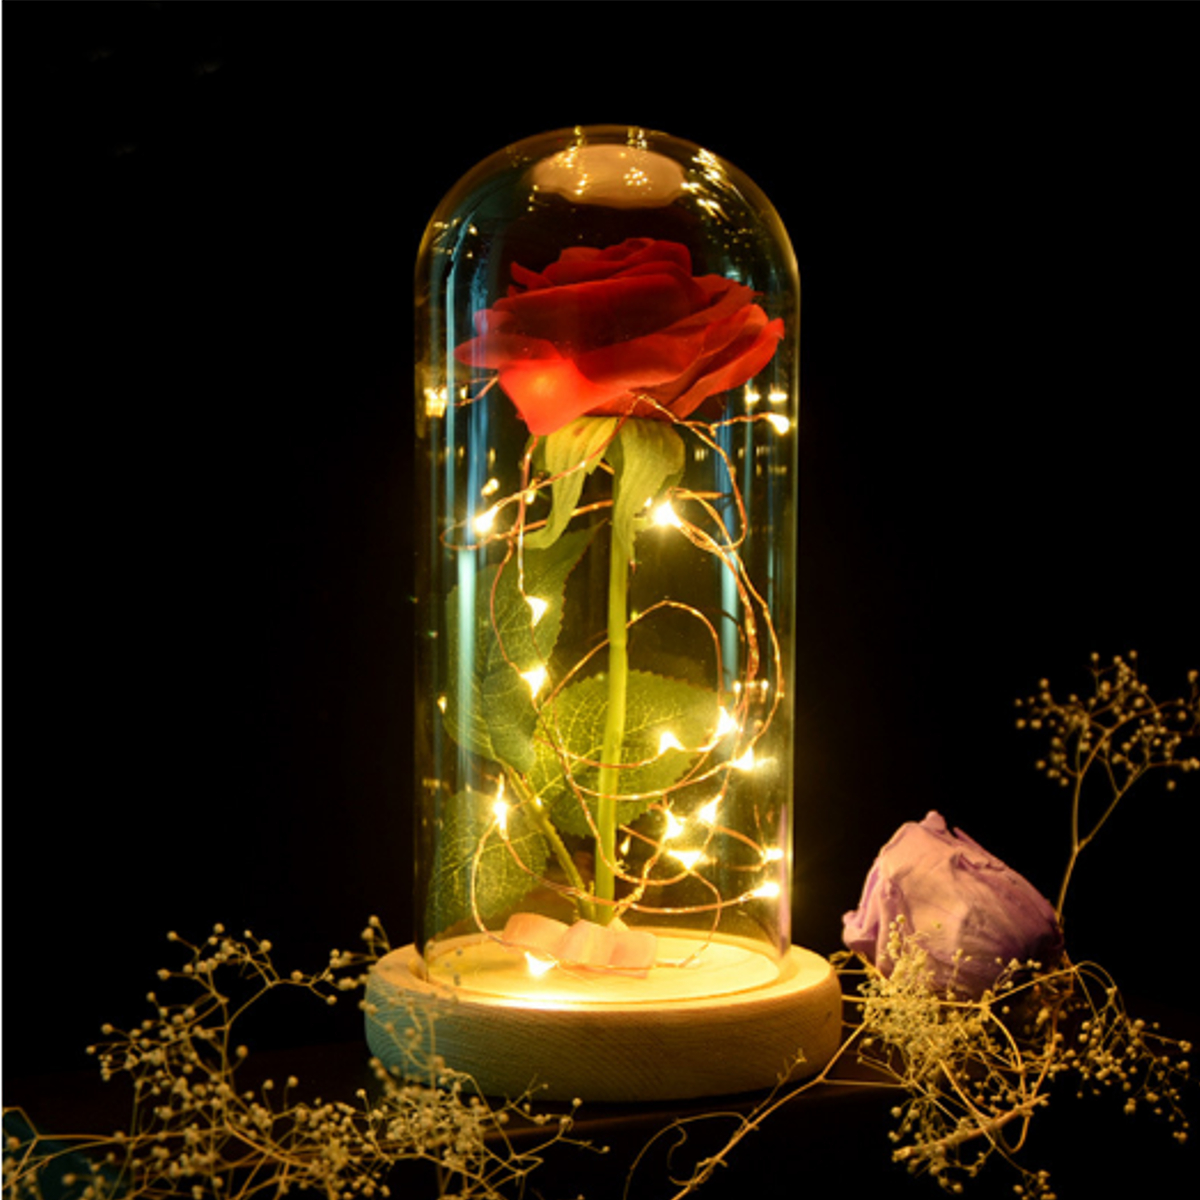 1Pcs Valentine's Day Beauty And Enchanted Preserved Fresh Red Rose The Beast Glass Cover + LED Light Unique Gifts, Log Base